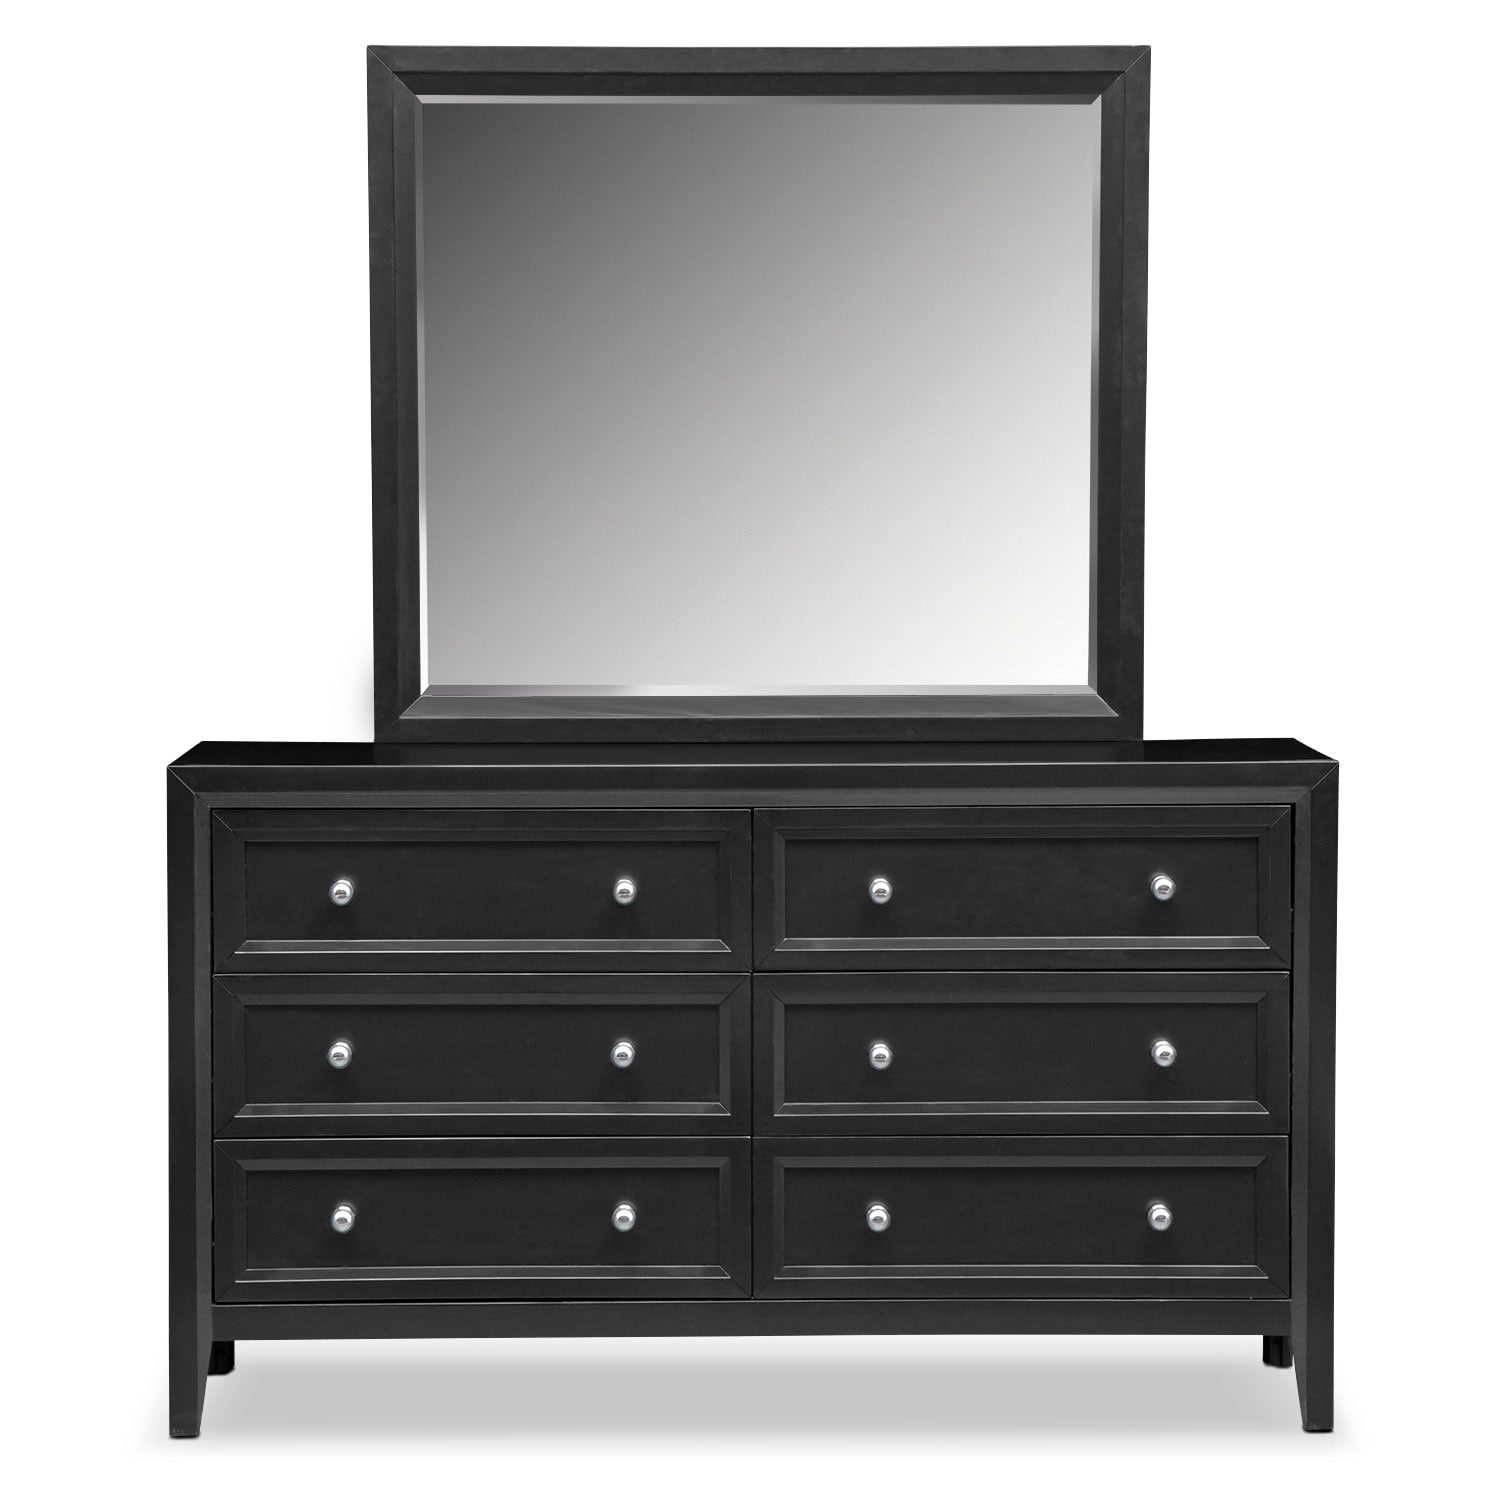 value city furniture dressers value city furniture dressers bestdressers 2017 17690